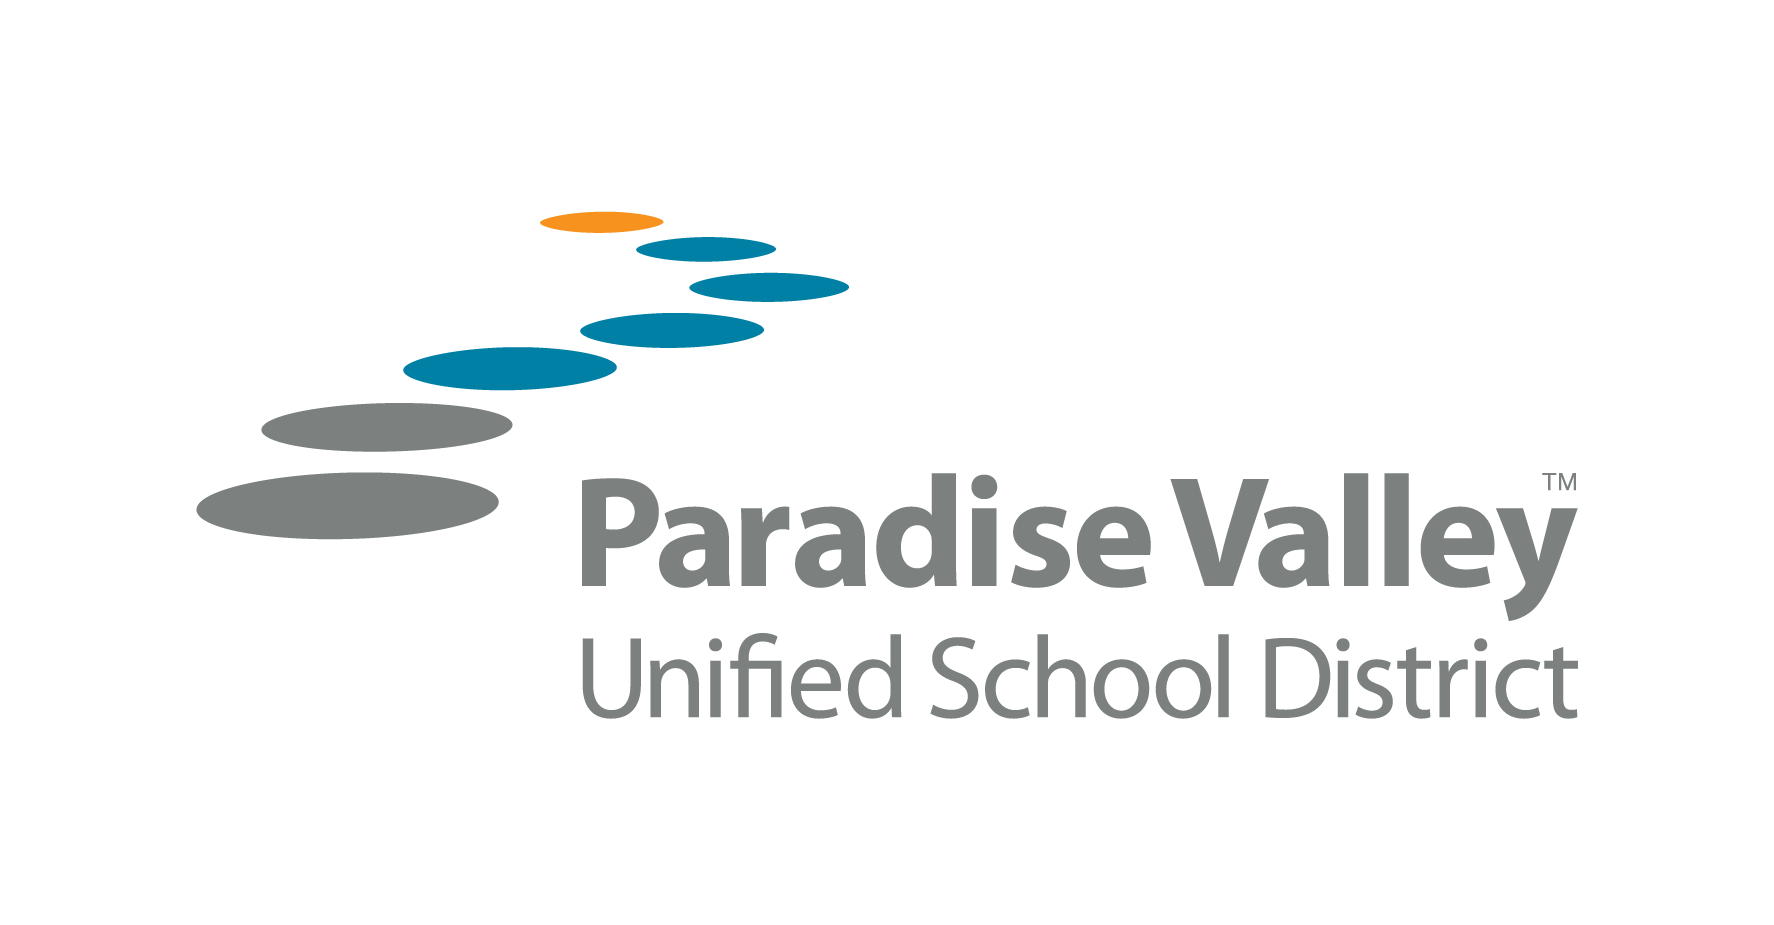 Arizona - Trường Trung Học Paradise Valley Unified School District - USA